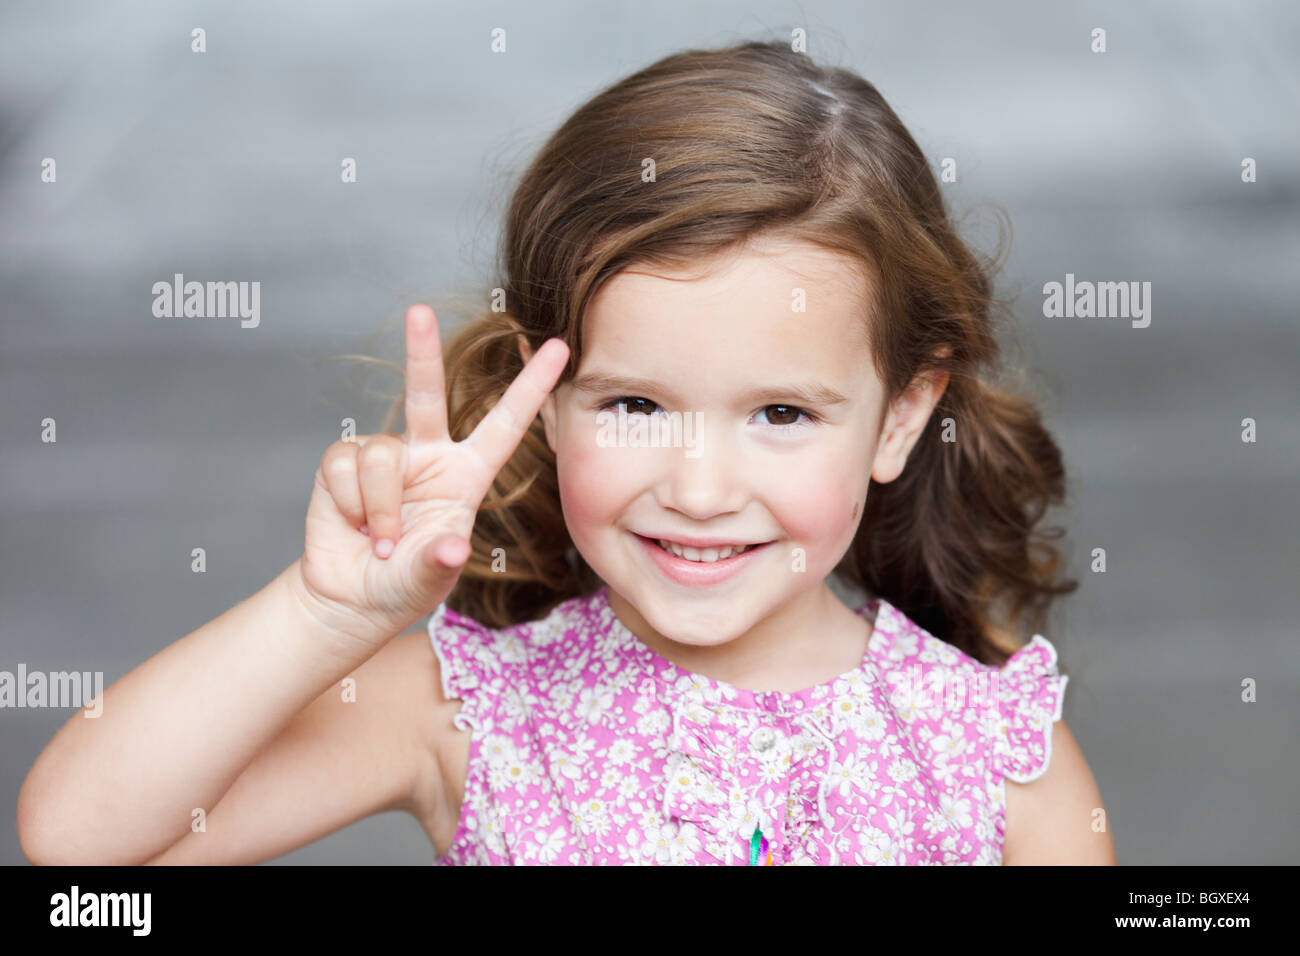 young girl holding up three fingers - Stock Image